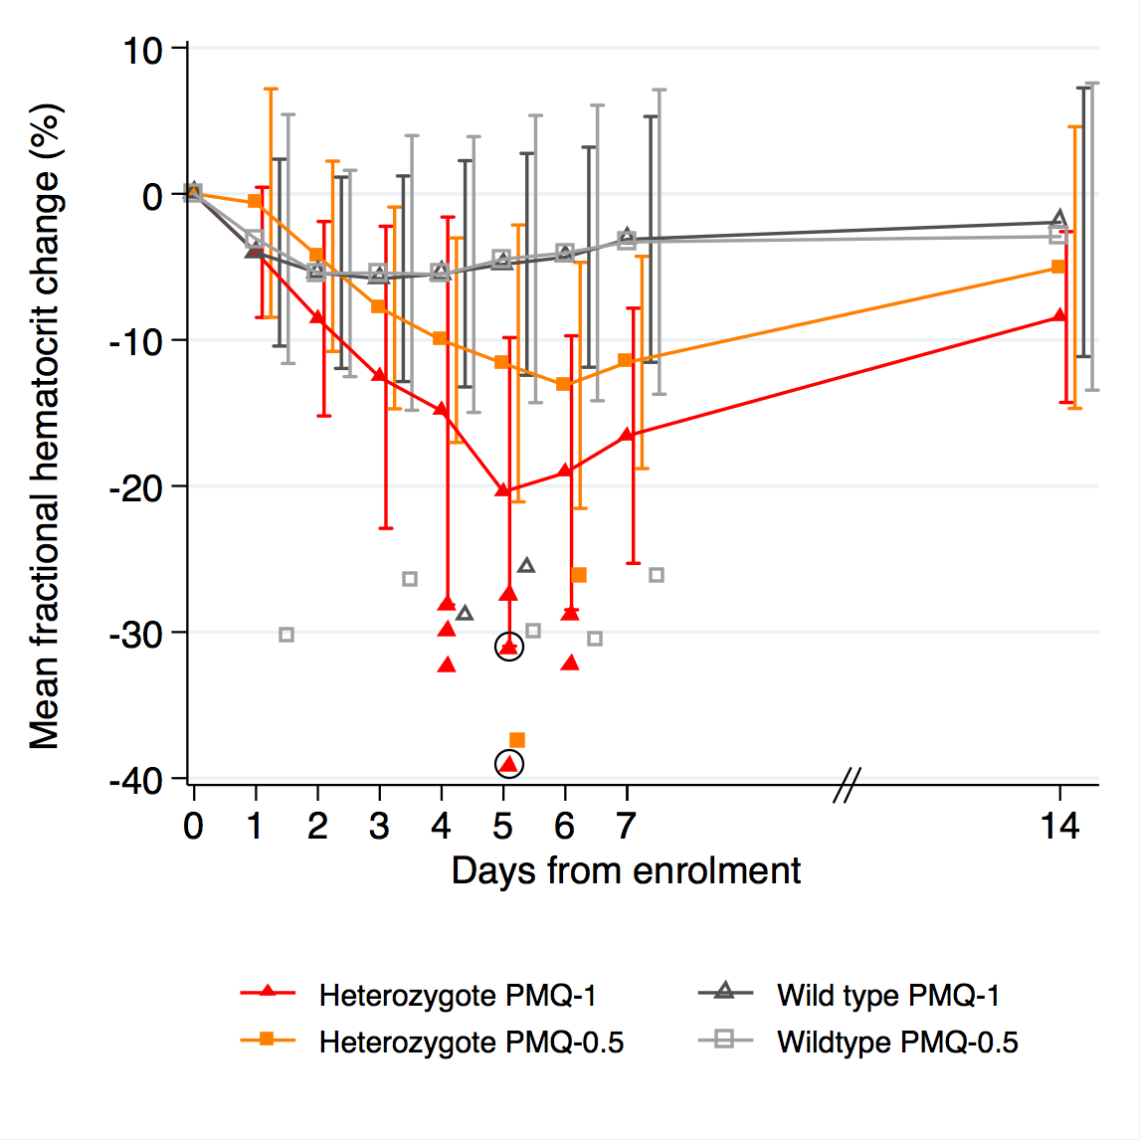 Haemolysis caused by primaquine is dose dependent: in red 1mg/kg/day and in orange 0.5 (standard treatment). Some individuals develop large fractional haematocrit reductions (plotted shapes). Circled individuals received a blood transfusion